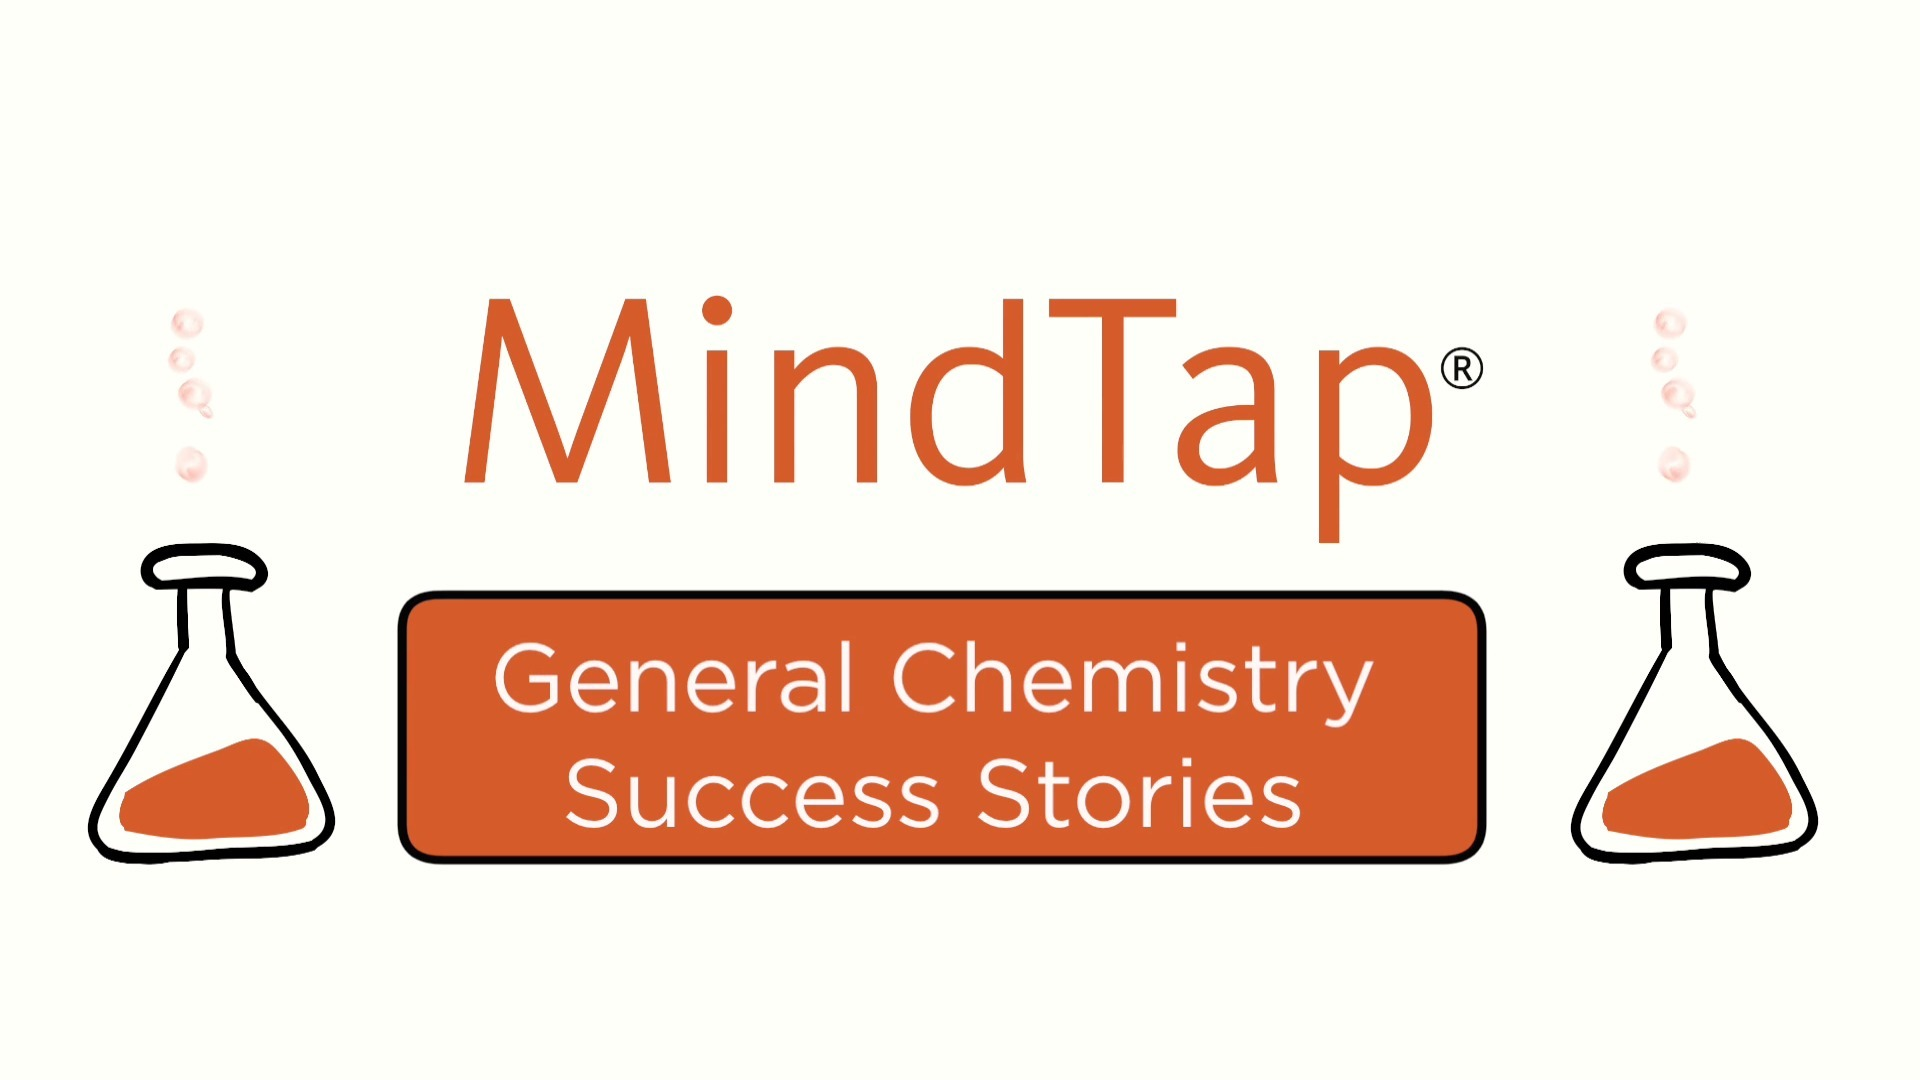 MindTap General Chemistry Success Story